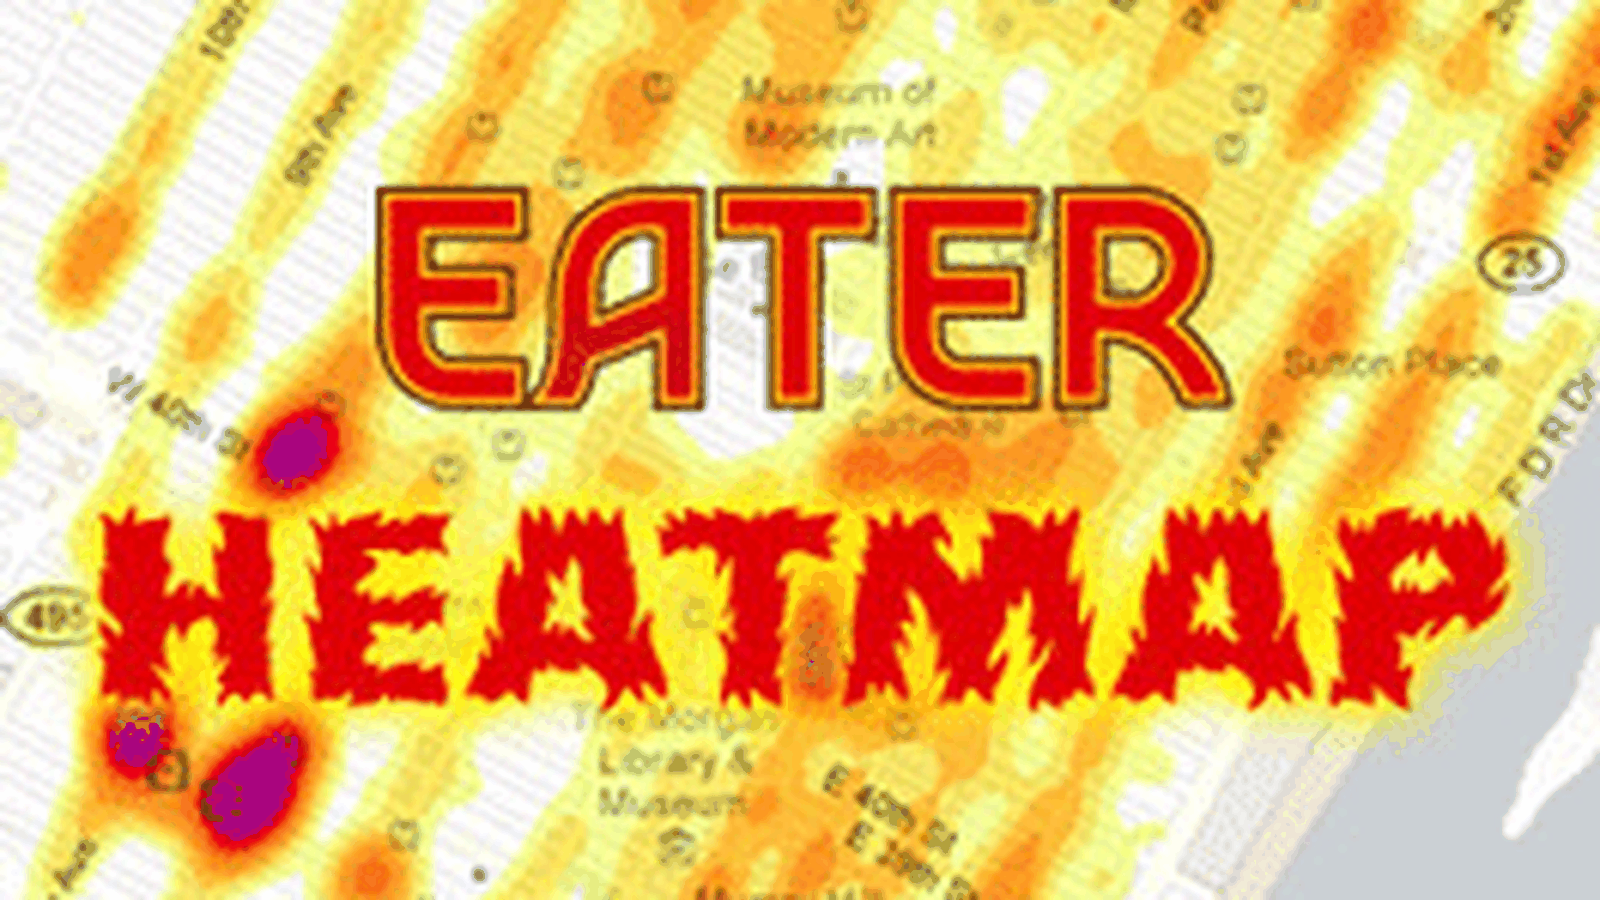 Francois Illas New Tradition: Updating The Eater Heatmap, September 2012